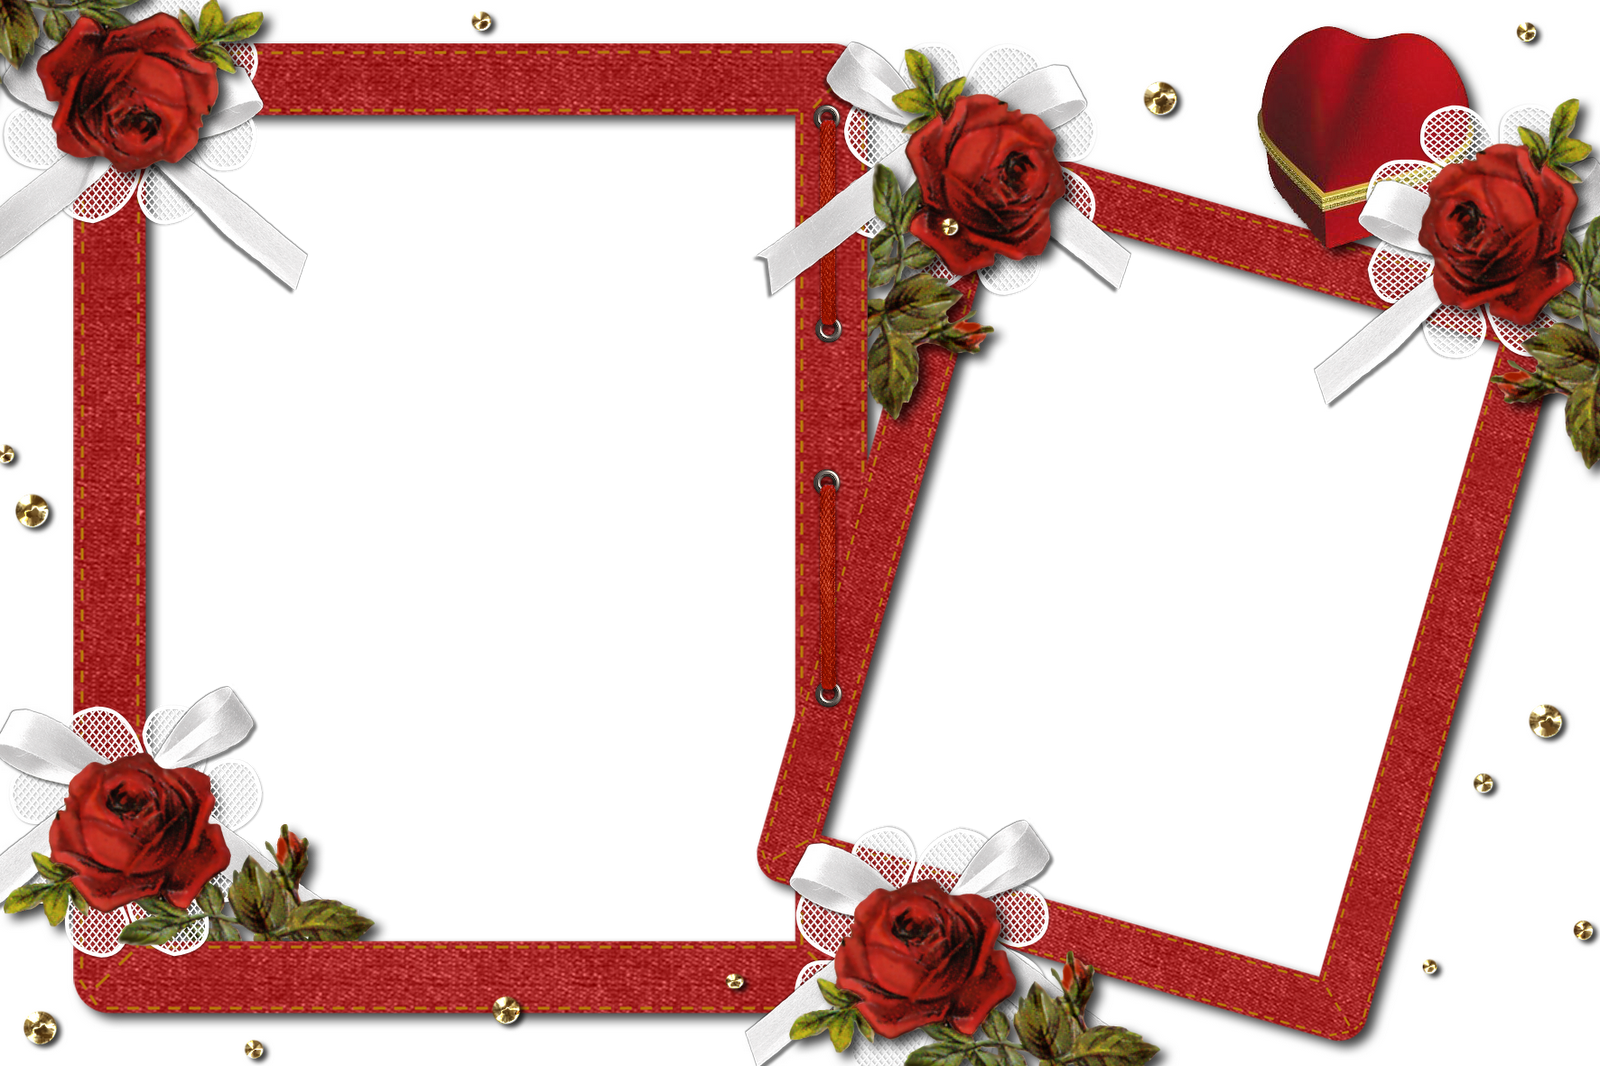 Romantic Floral Photo Frame Png image #27897